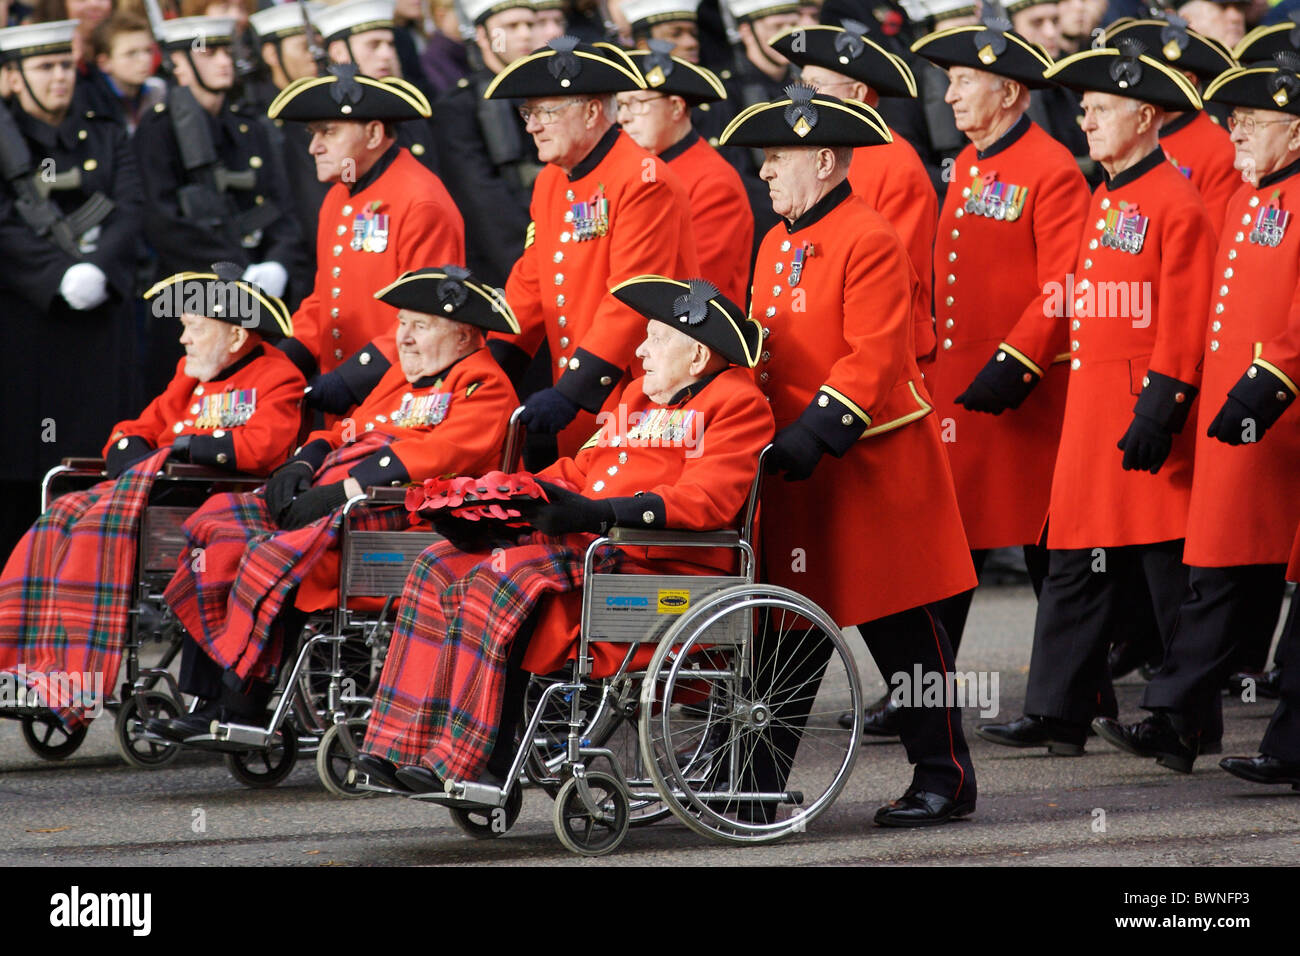 Chelsea Pensioners Veterans march past at the Cenotaph in Whitehall on Remembrance Sunday to commemorate the war - Stock Image